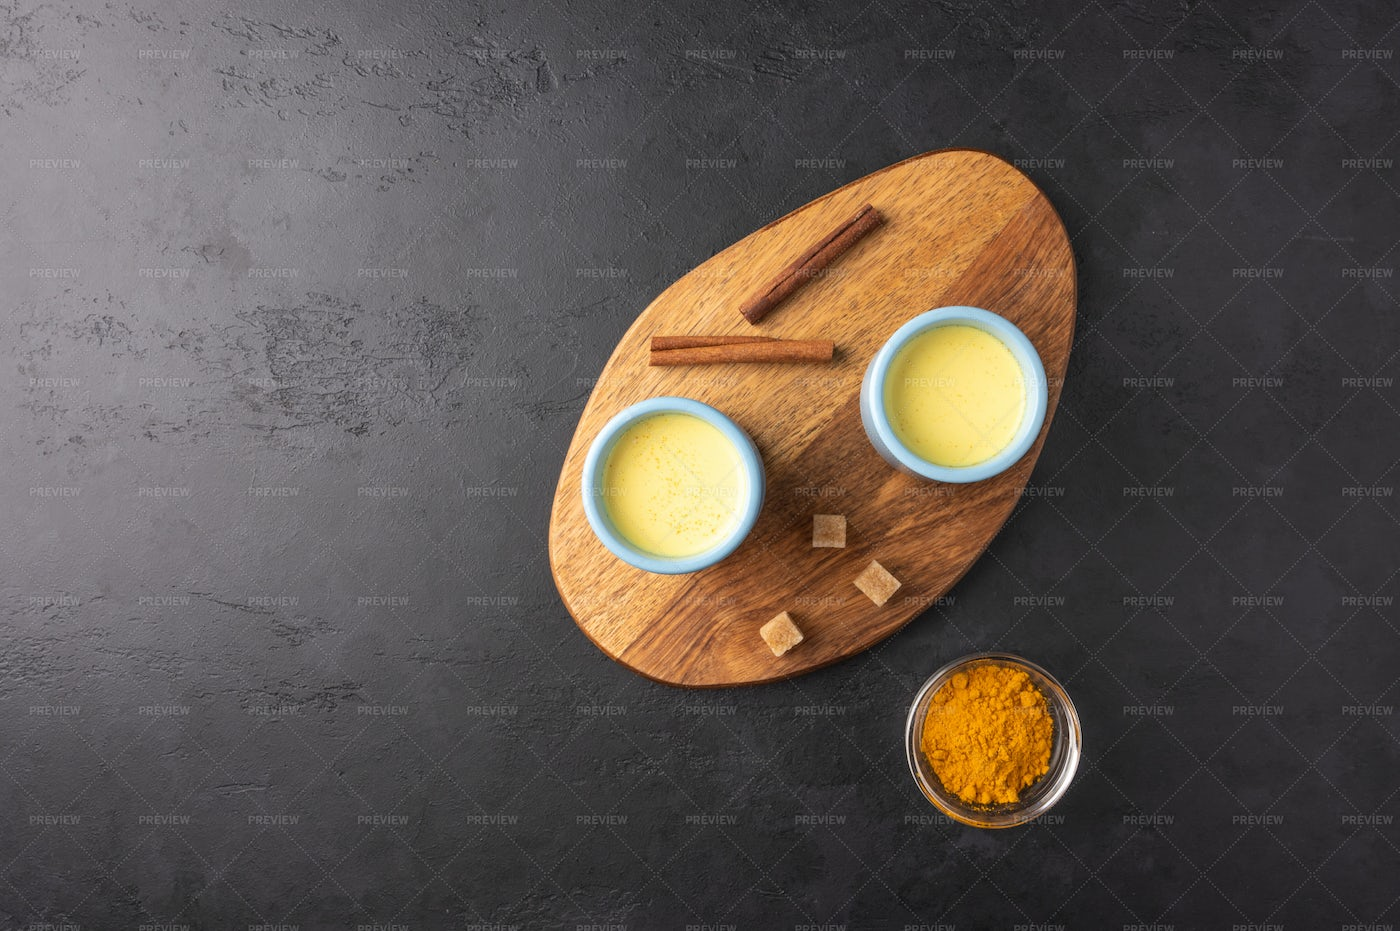 Ceramic Cups And Spices: Stock Photos